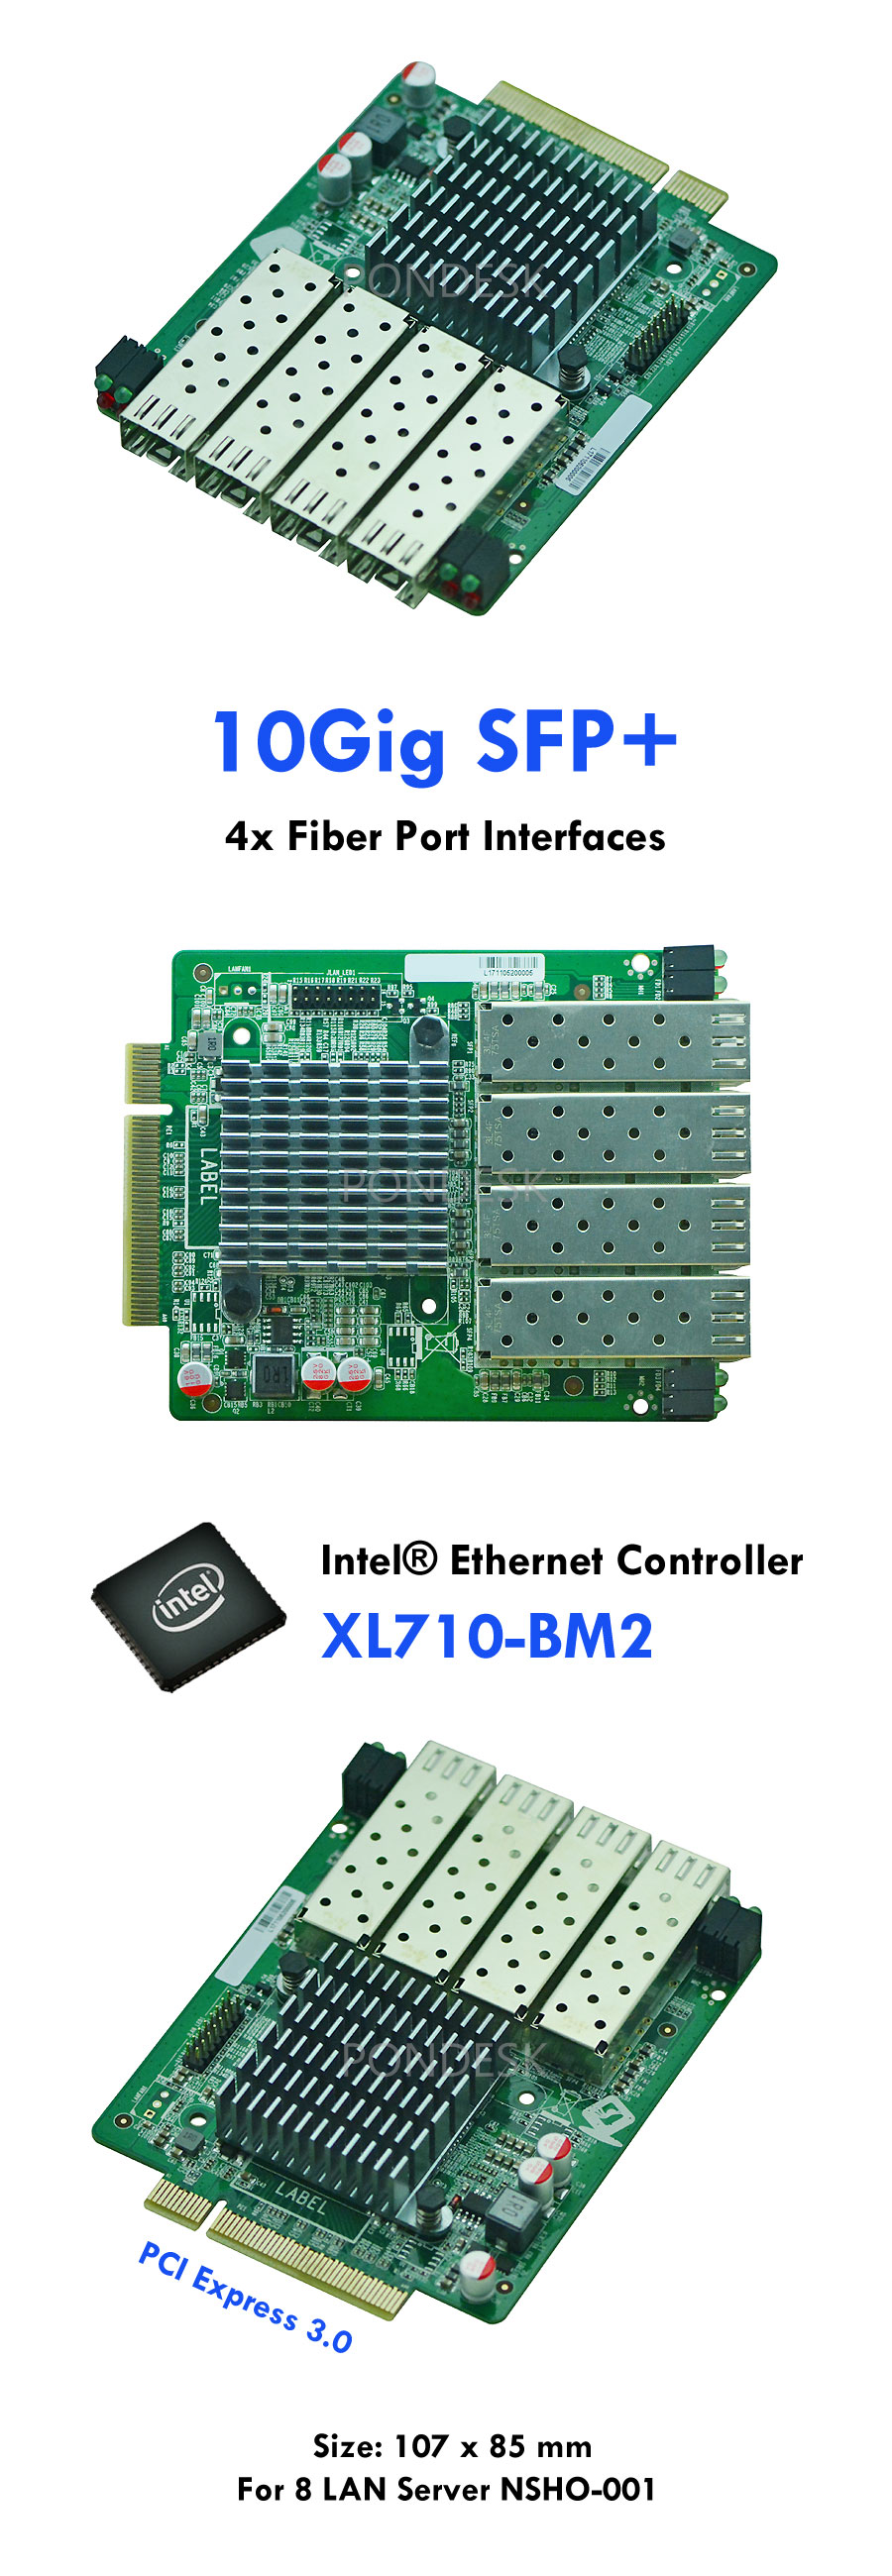 Intel XL710-BM2 PCIe x8 SFP+ 10Gig Fiber Port Interface Card - NWEL-021 | Image